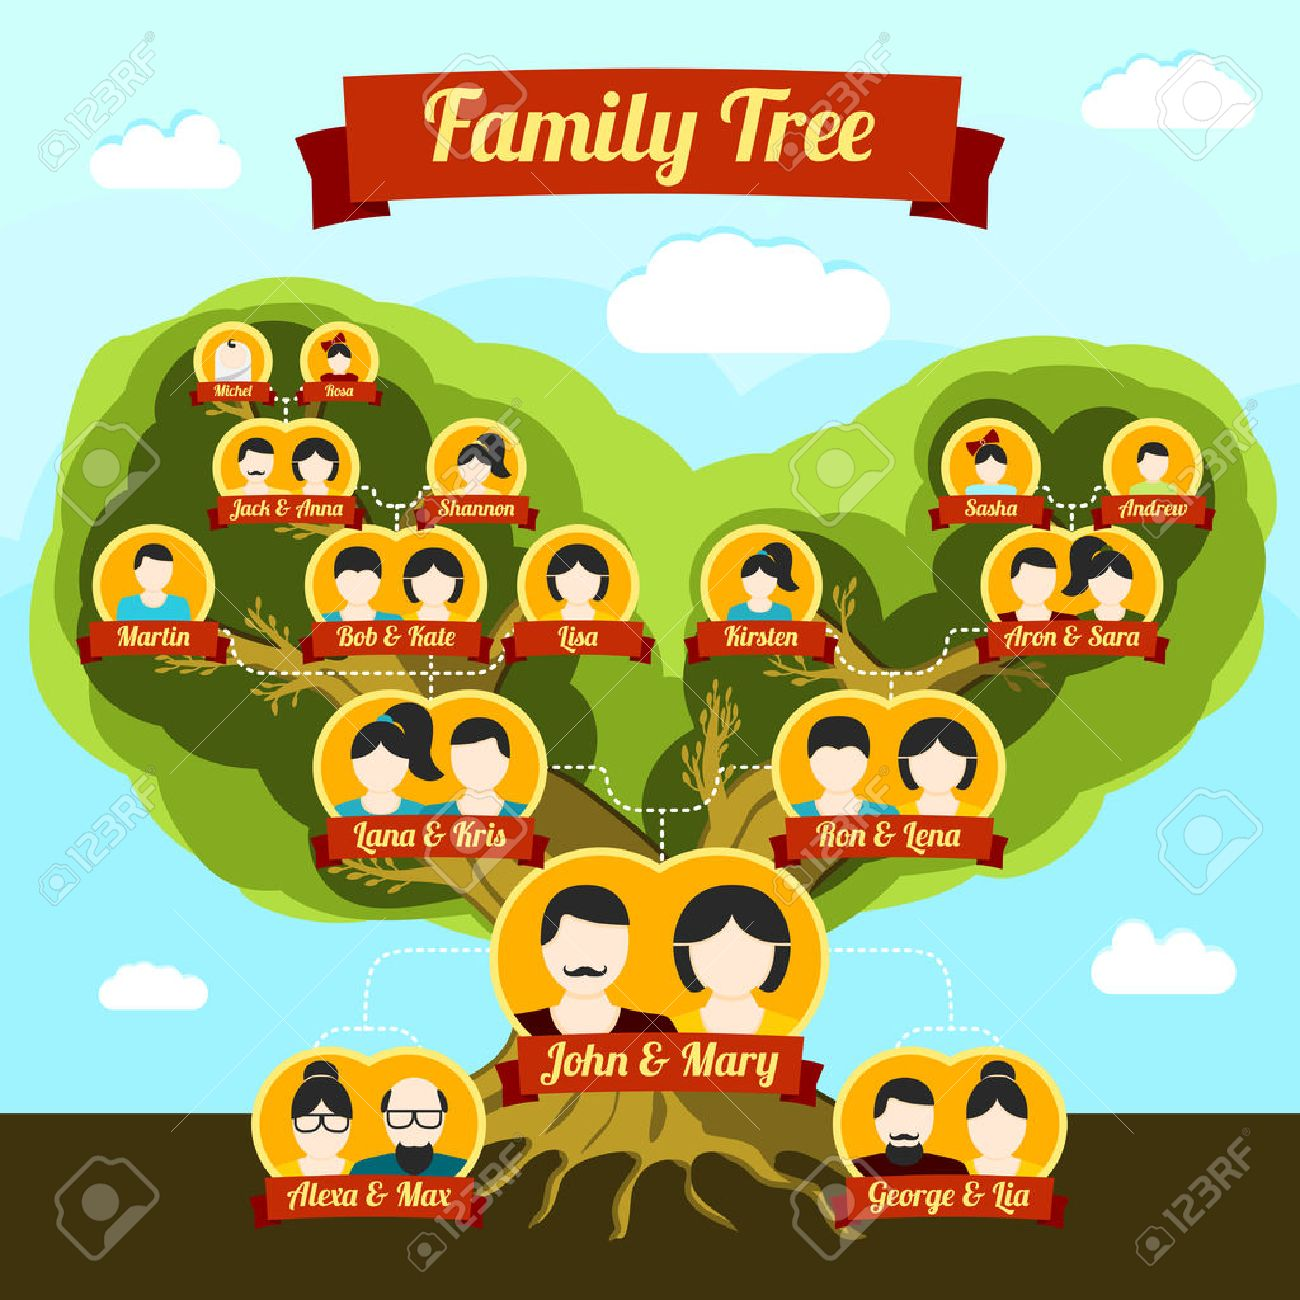 Family tree with places for your pictures and names. Vector illustration Stock Vector - 43461984